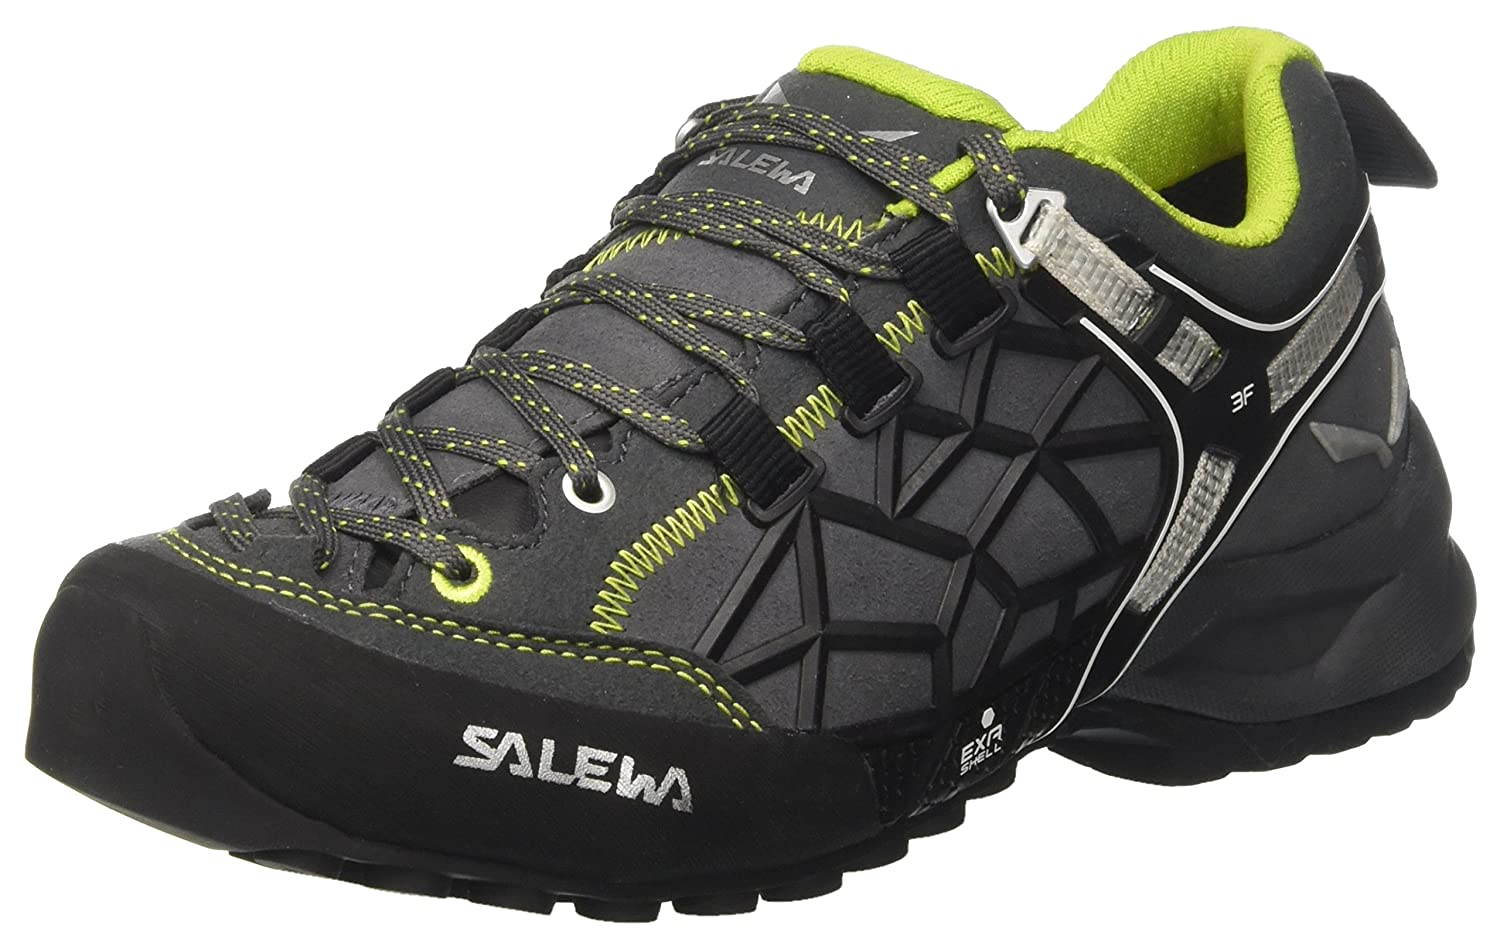 Salewa Un Wildfire Pro, Zapatillas de Senderismo Unisex Adulto 35 EU|Multicolor (Carbon/Green 0763) Multicolor (Carbon/Green 0763)